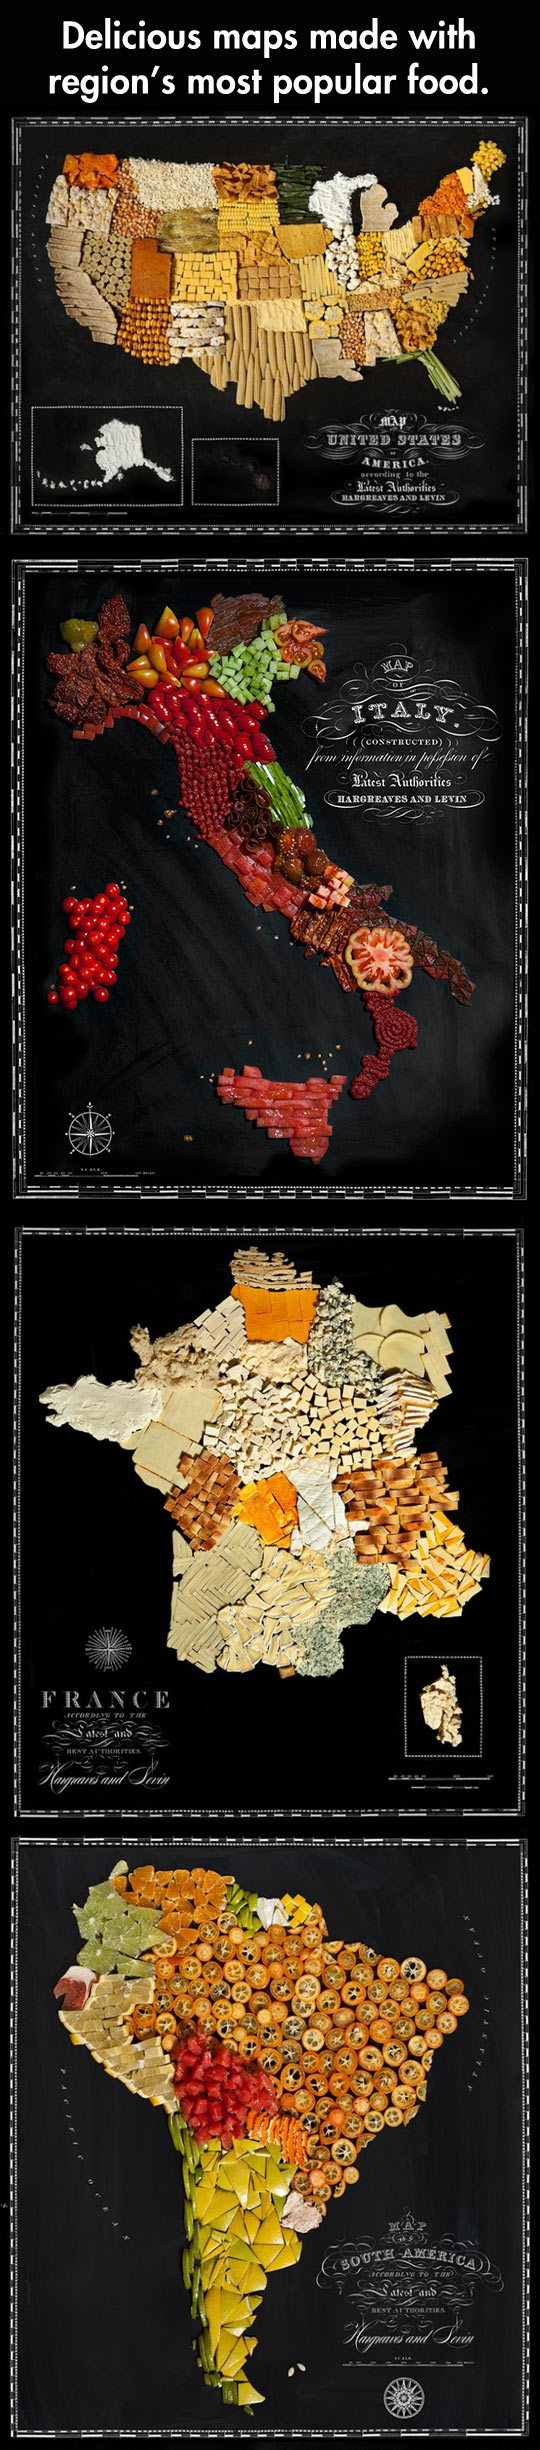 cool-delicious-maps-regional-food